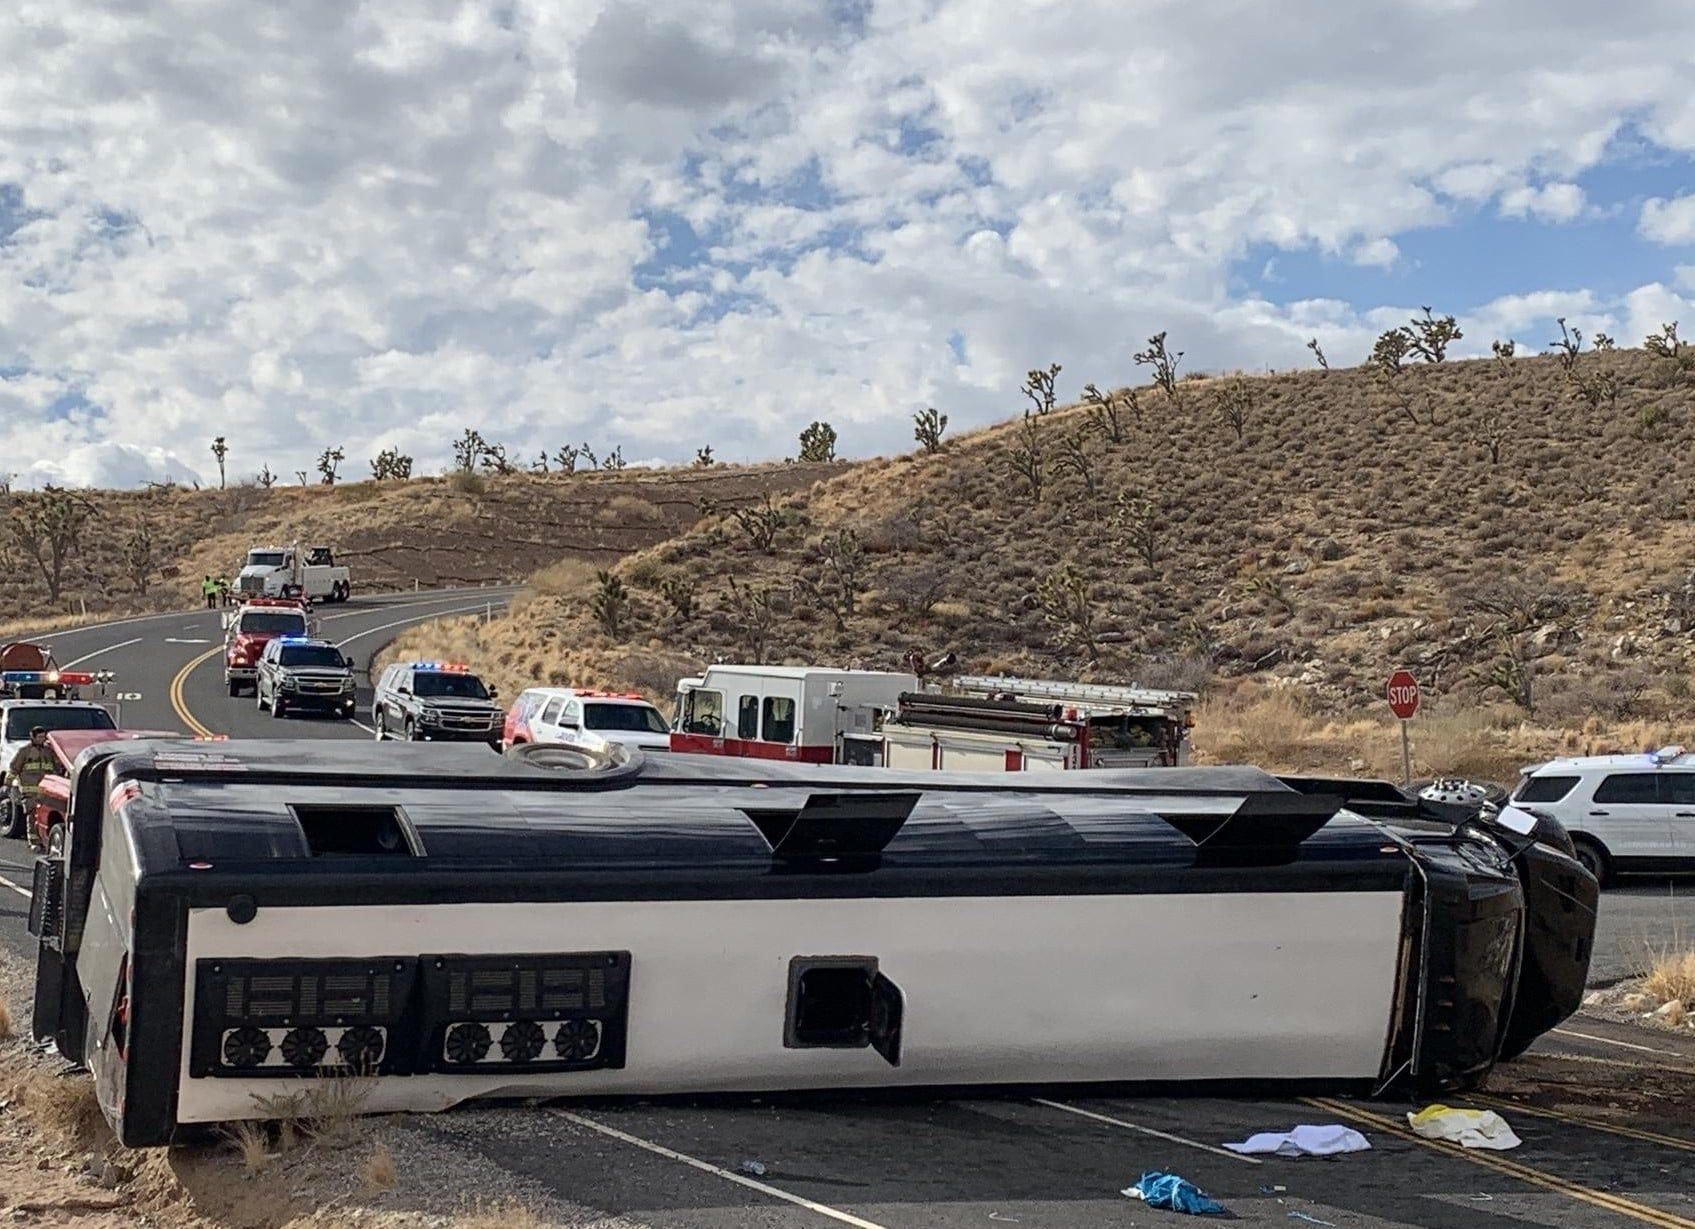 One Person Killed, Two Critically Injured After Tour Bus Crashes on Its Way to Grand Canyon West